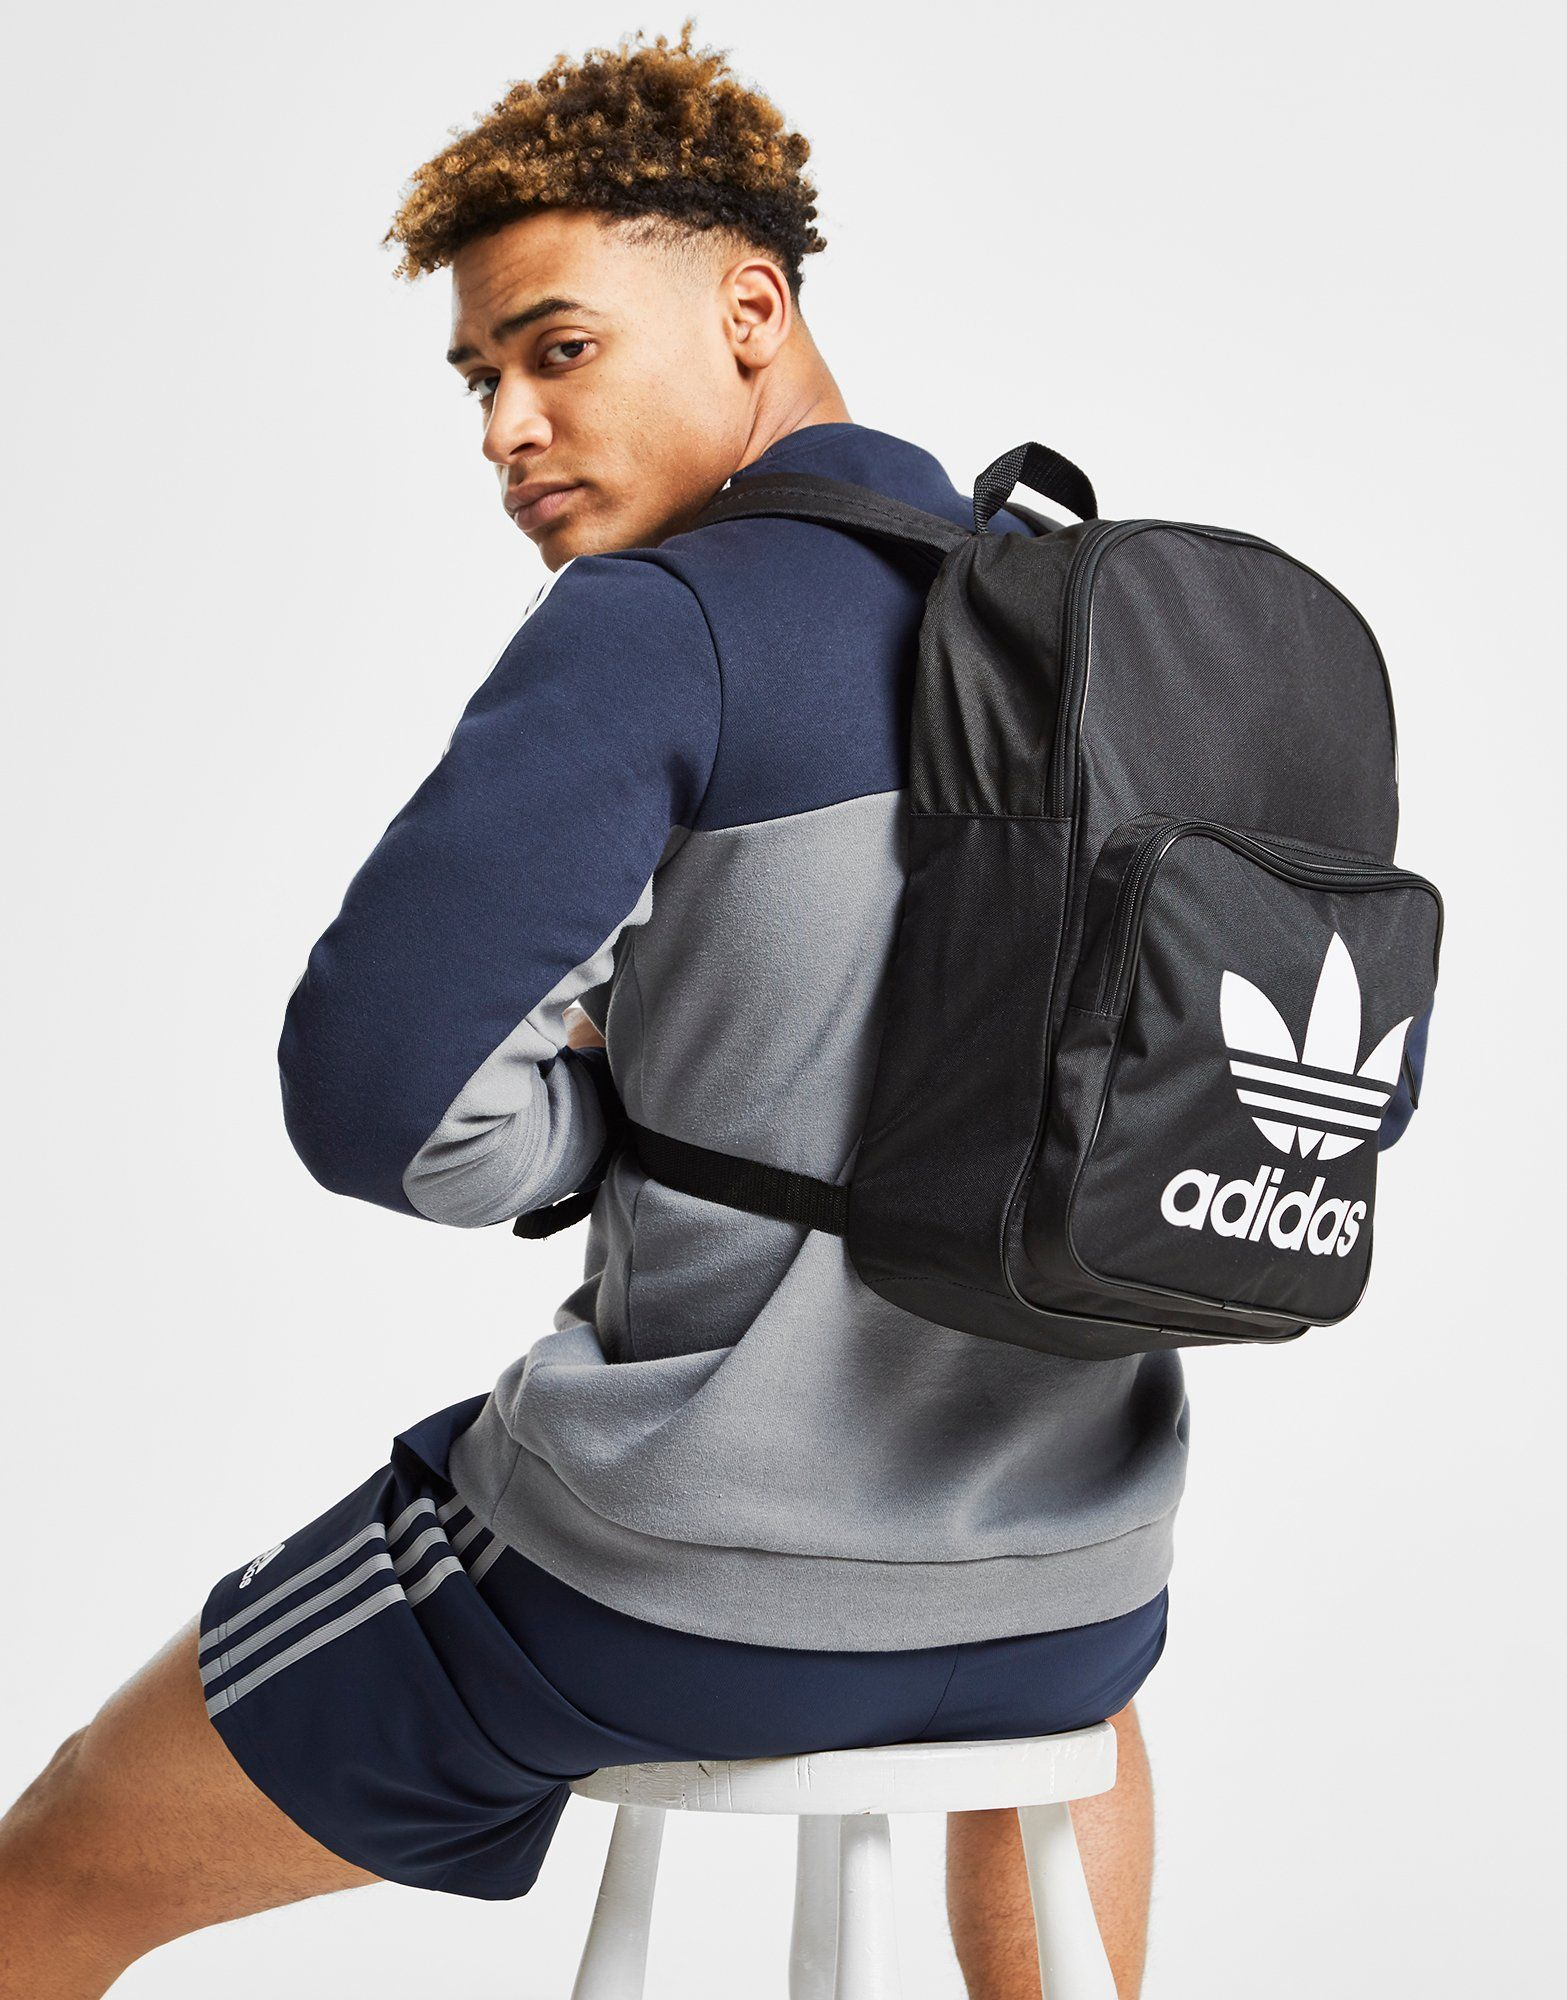 new product b03e6 02167 adidas Originals Classic Trefoil Backpack   JD Sports Ireland